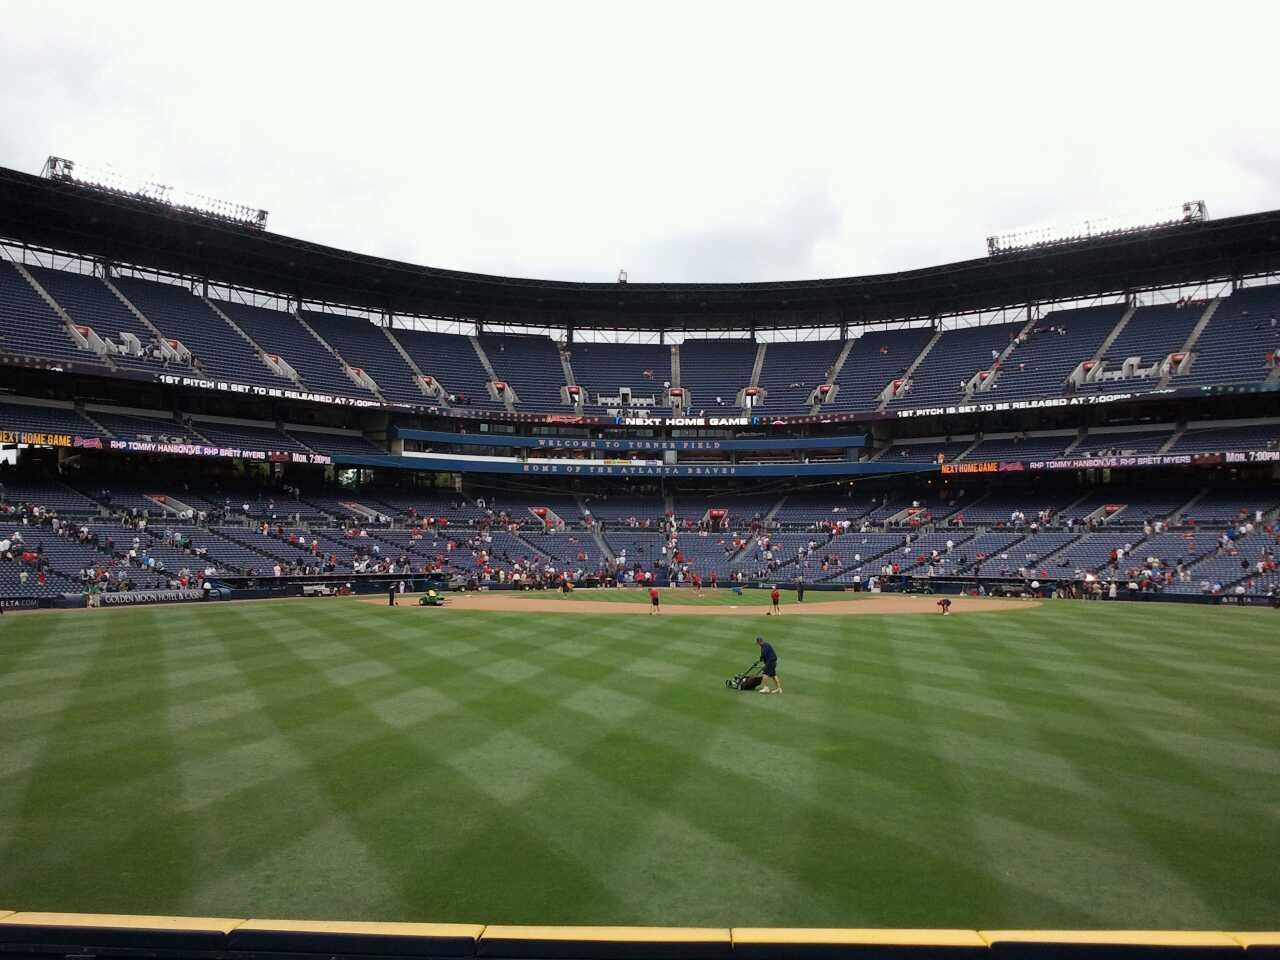 Turner Field Section 151 Row 18 Seat 110